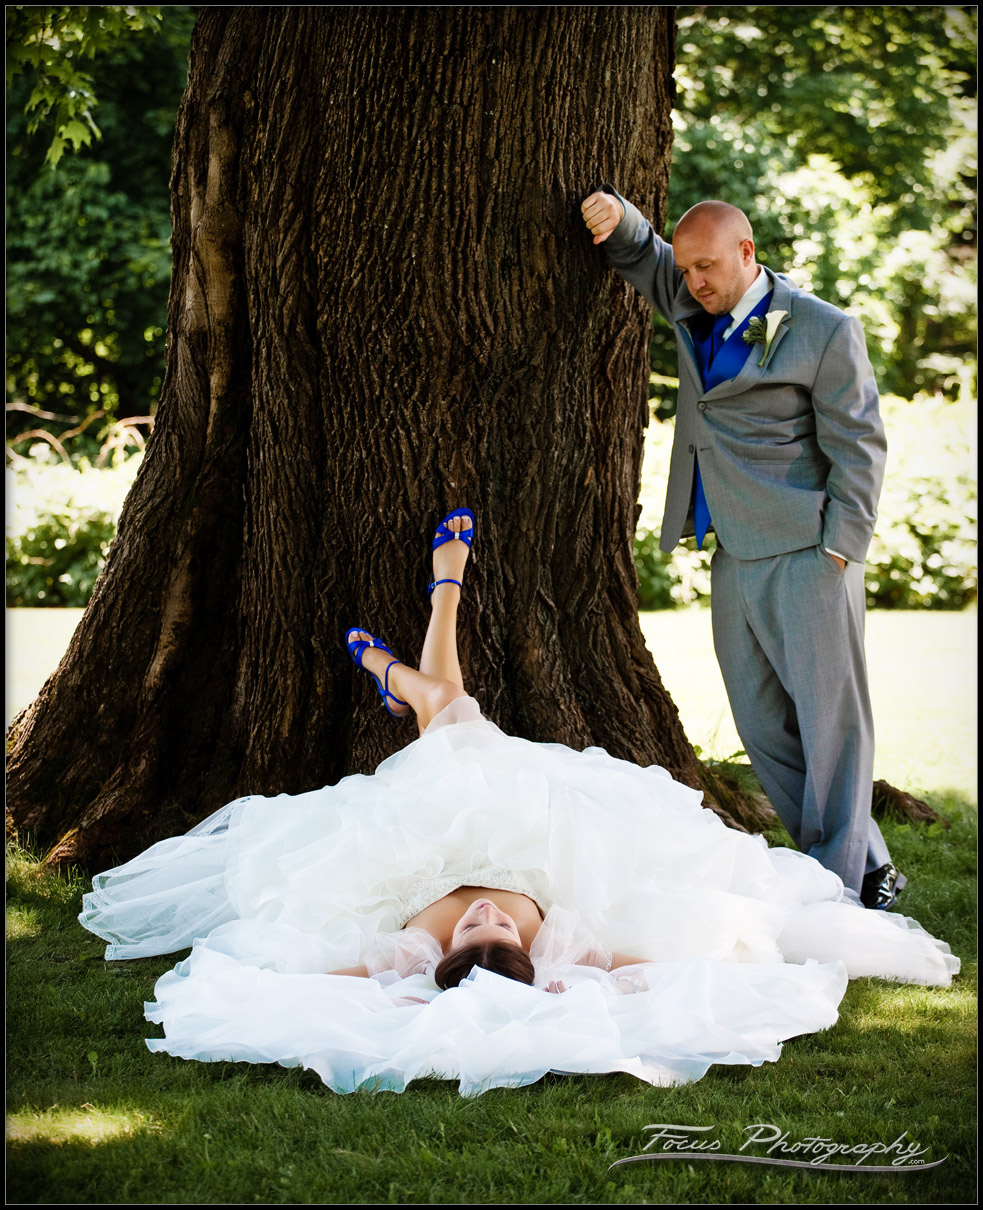 The bride's feet upon a tree